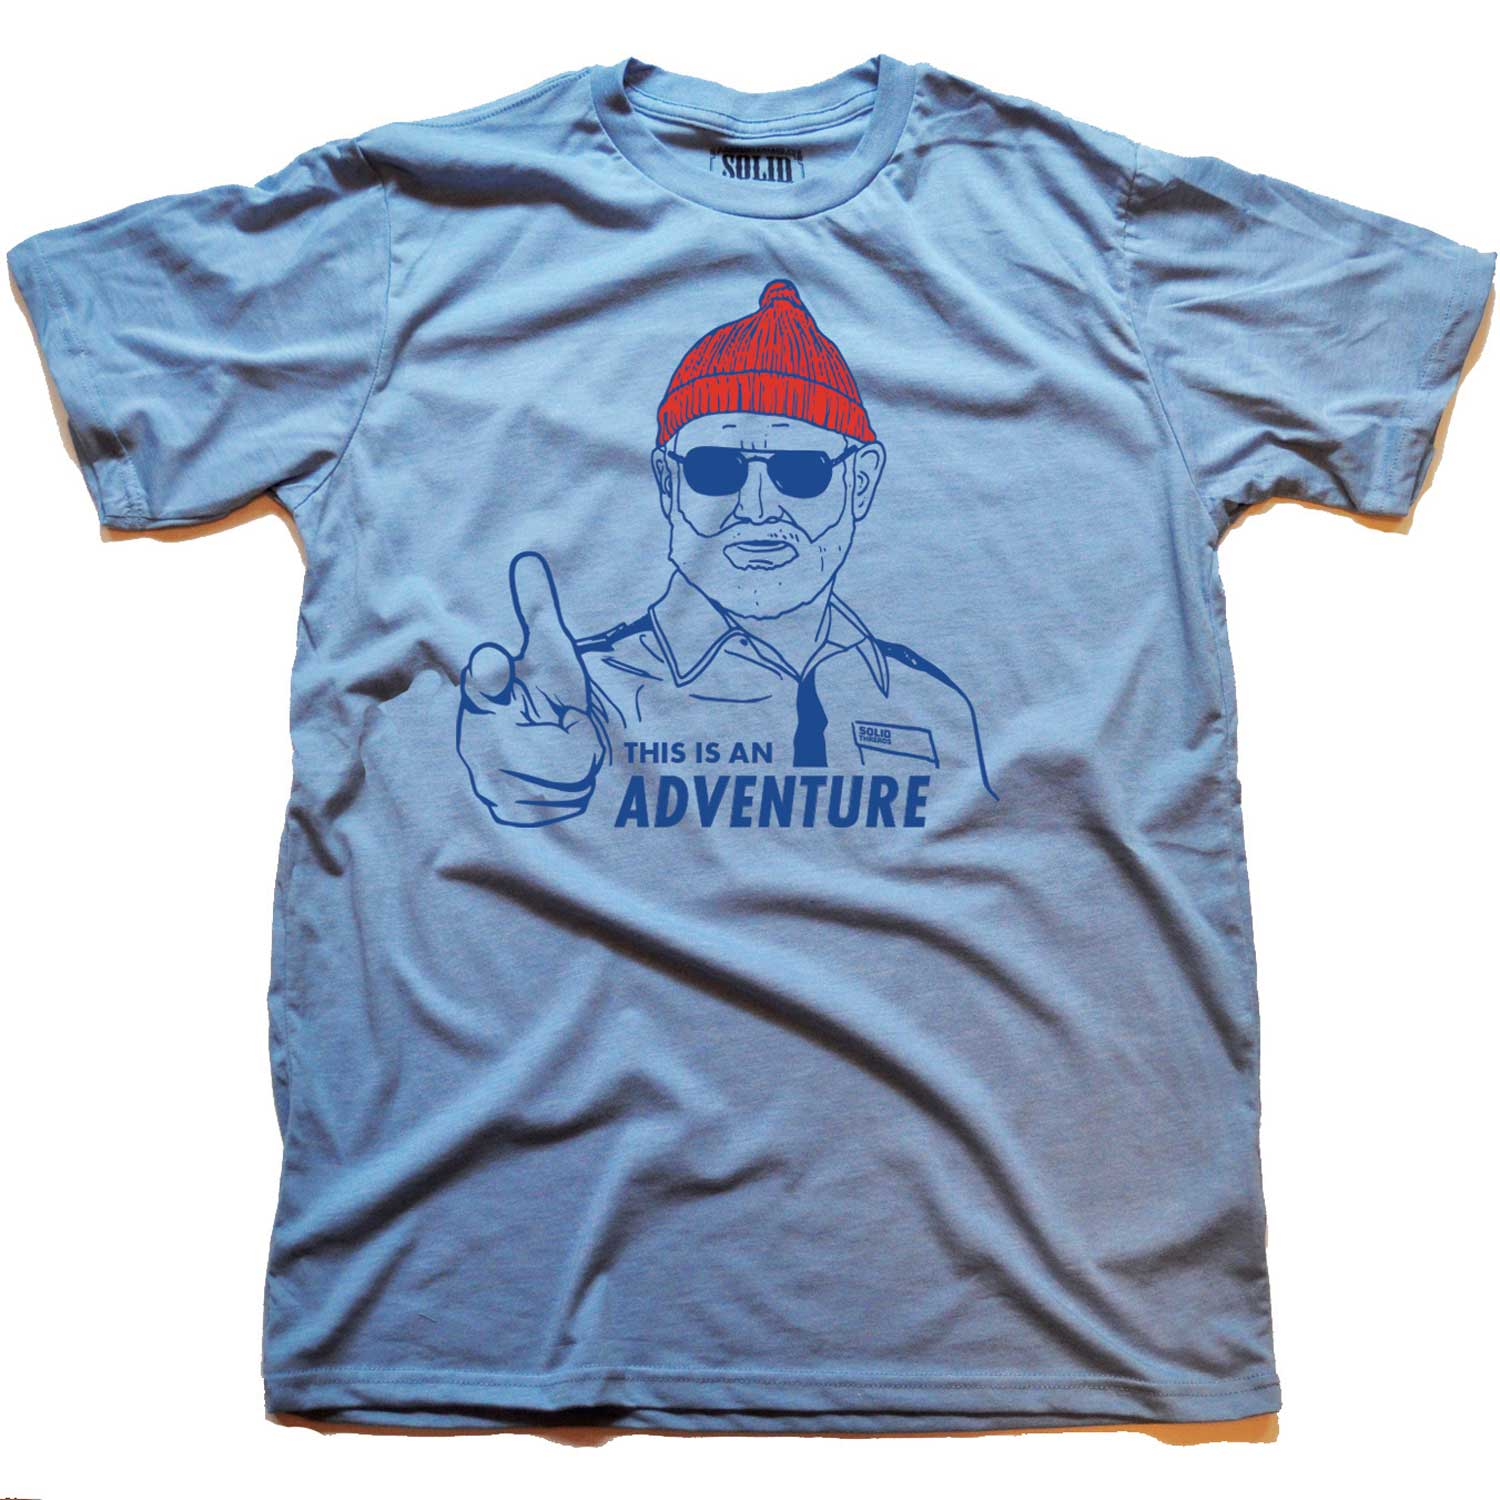 mens_steve_zissou_adventure_vintage_inspired_lightblue_tee_shirt_with_cool_life_acquatic_graphic